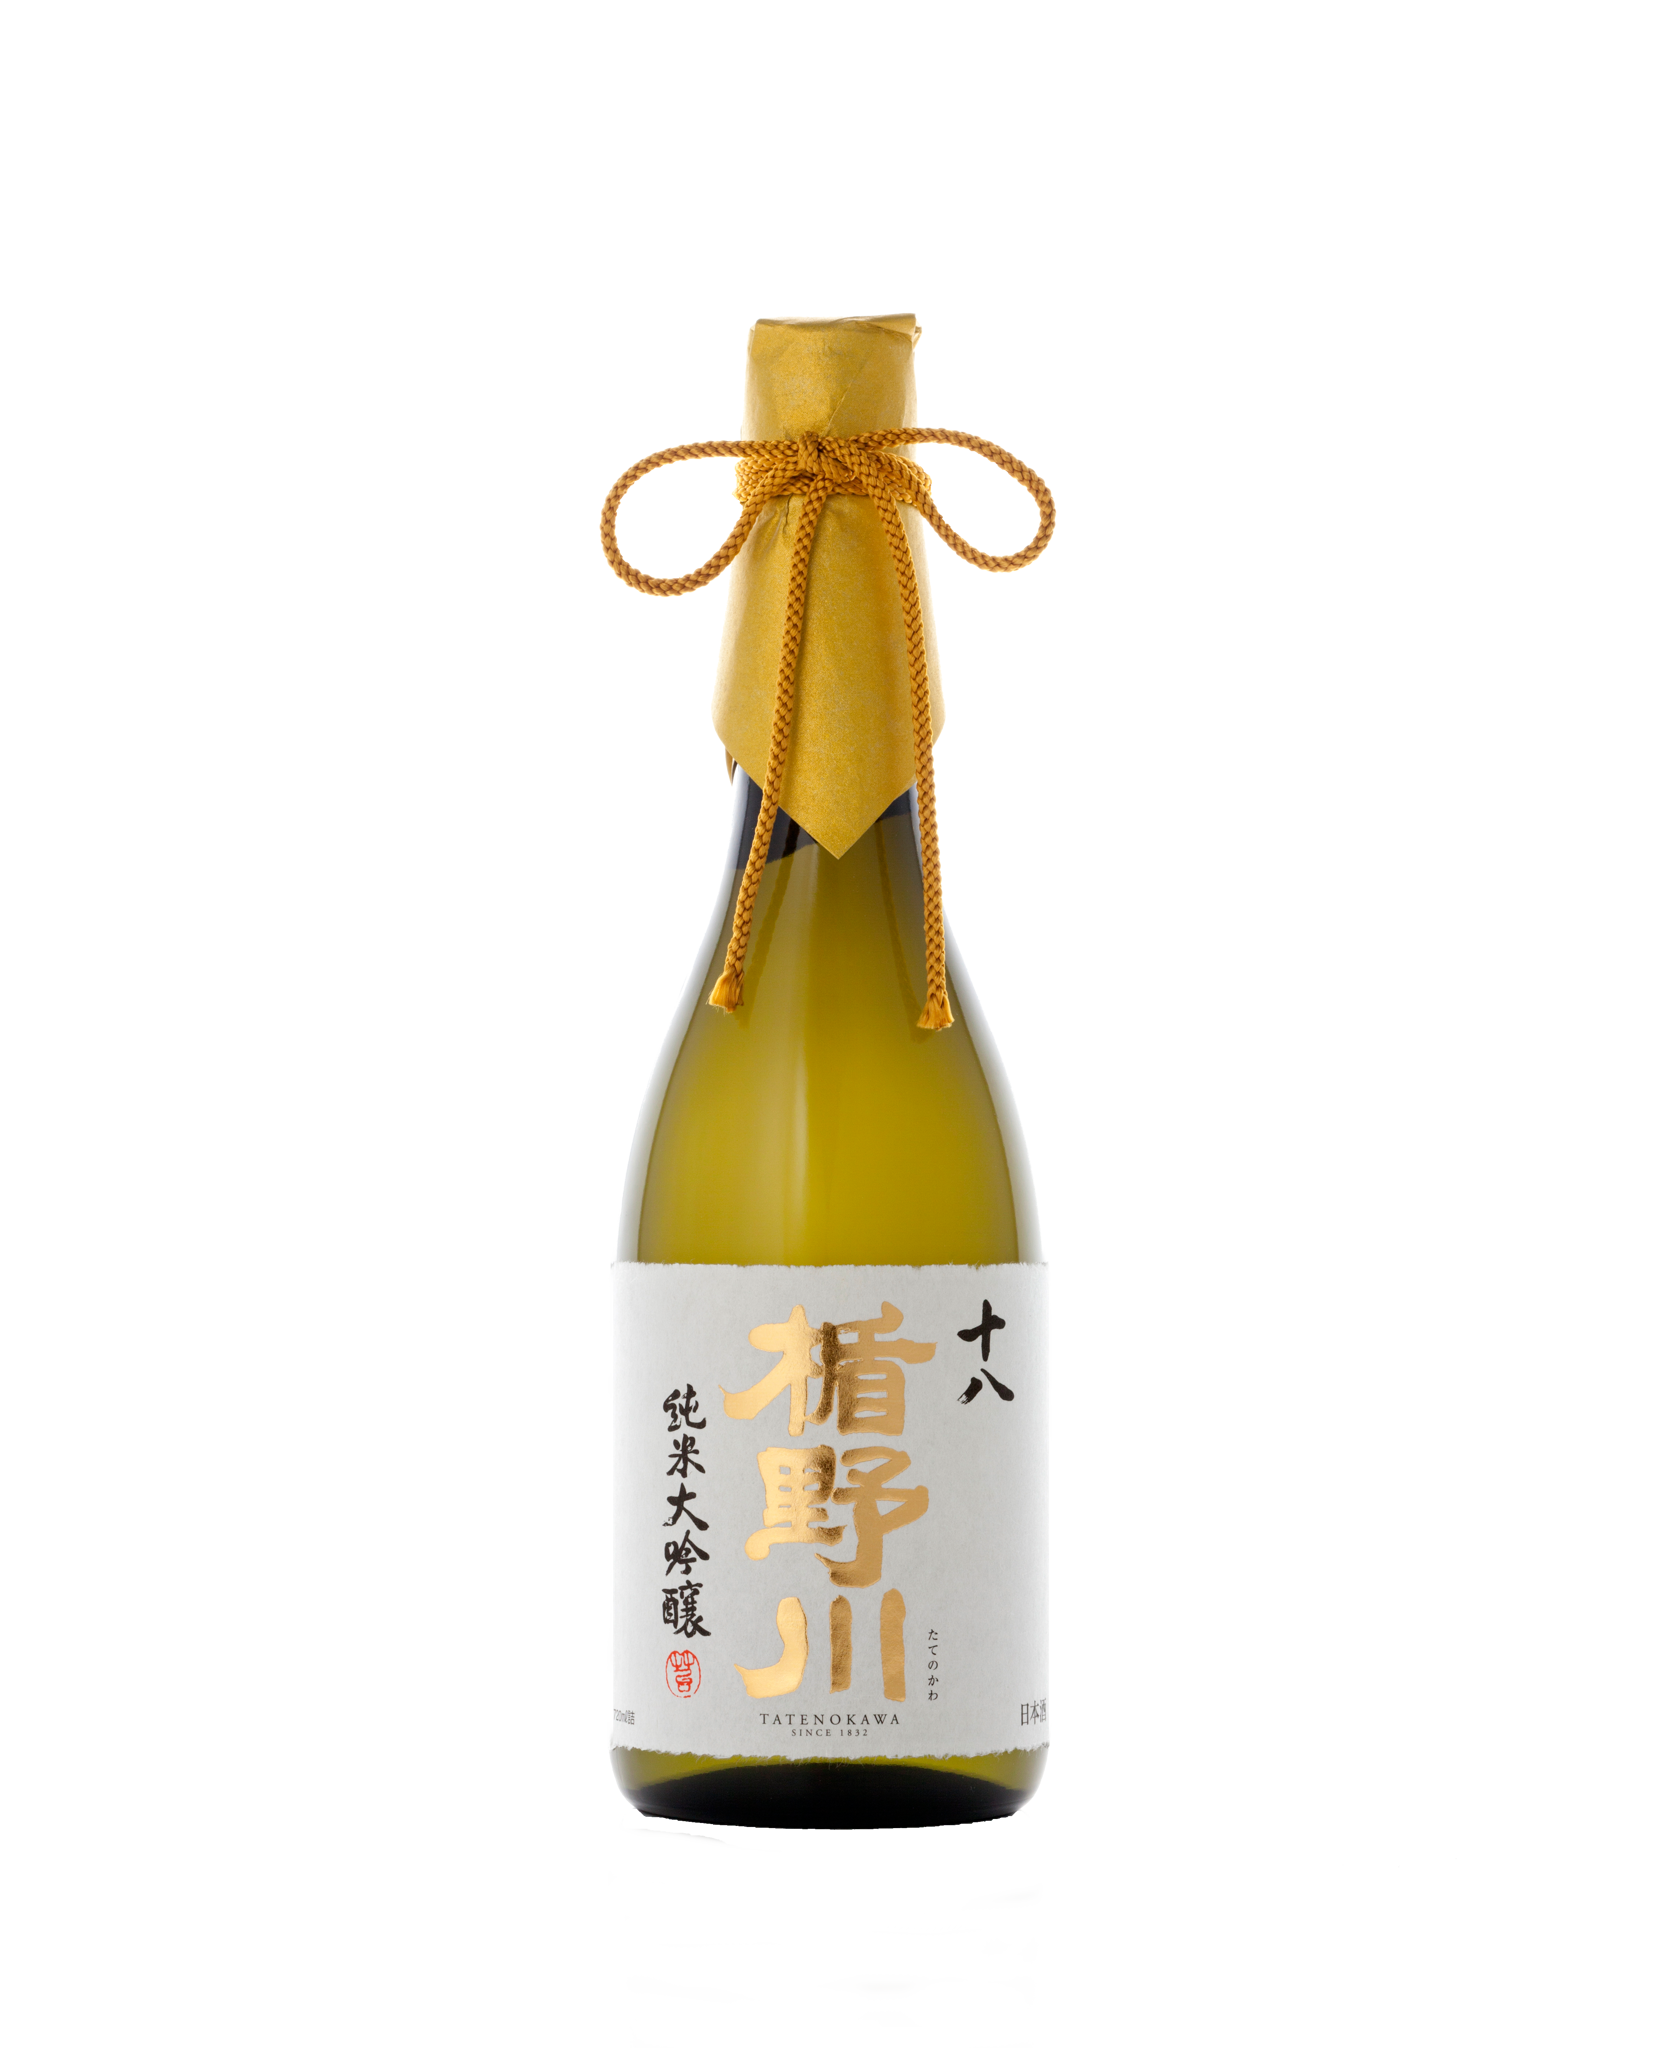 TATENOKAWA 18 720ml